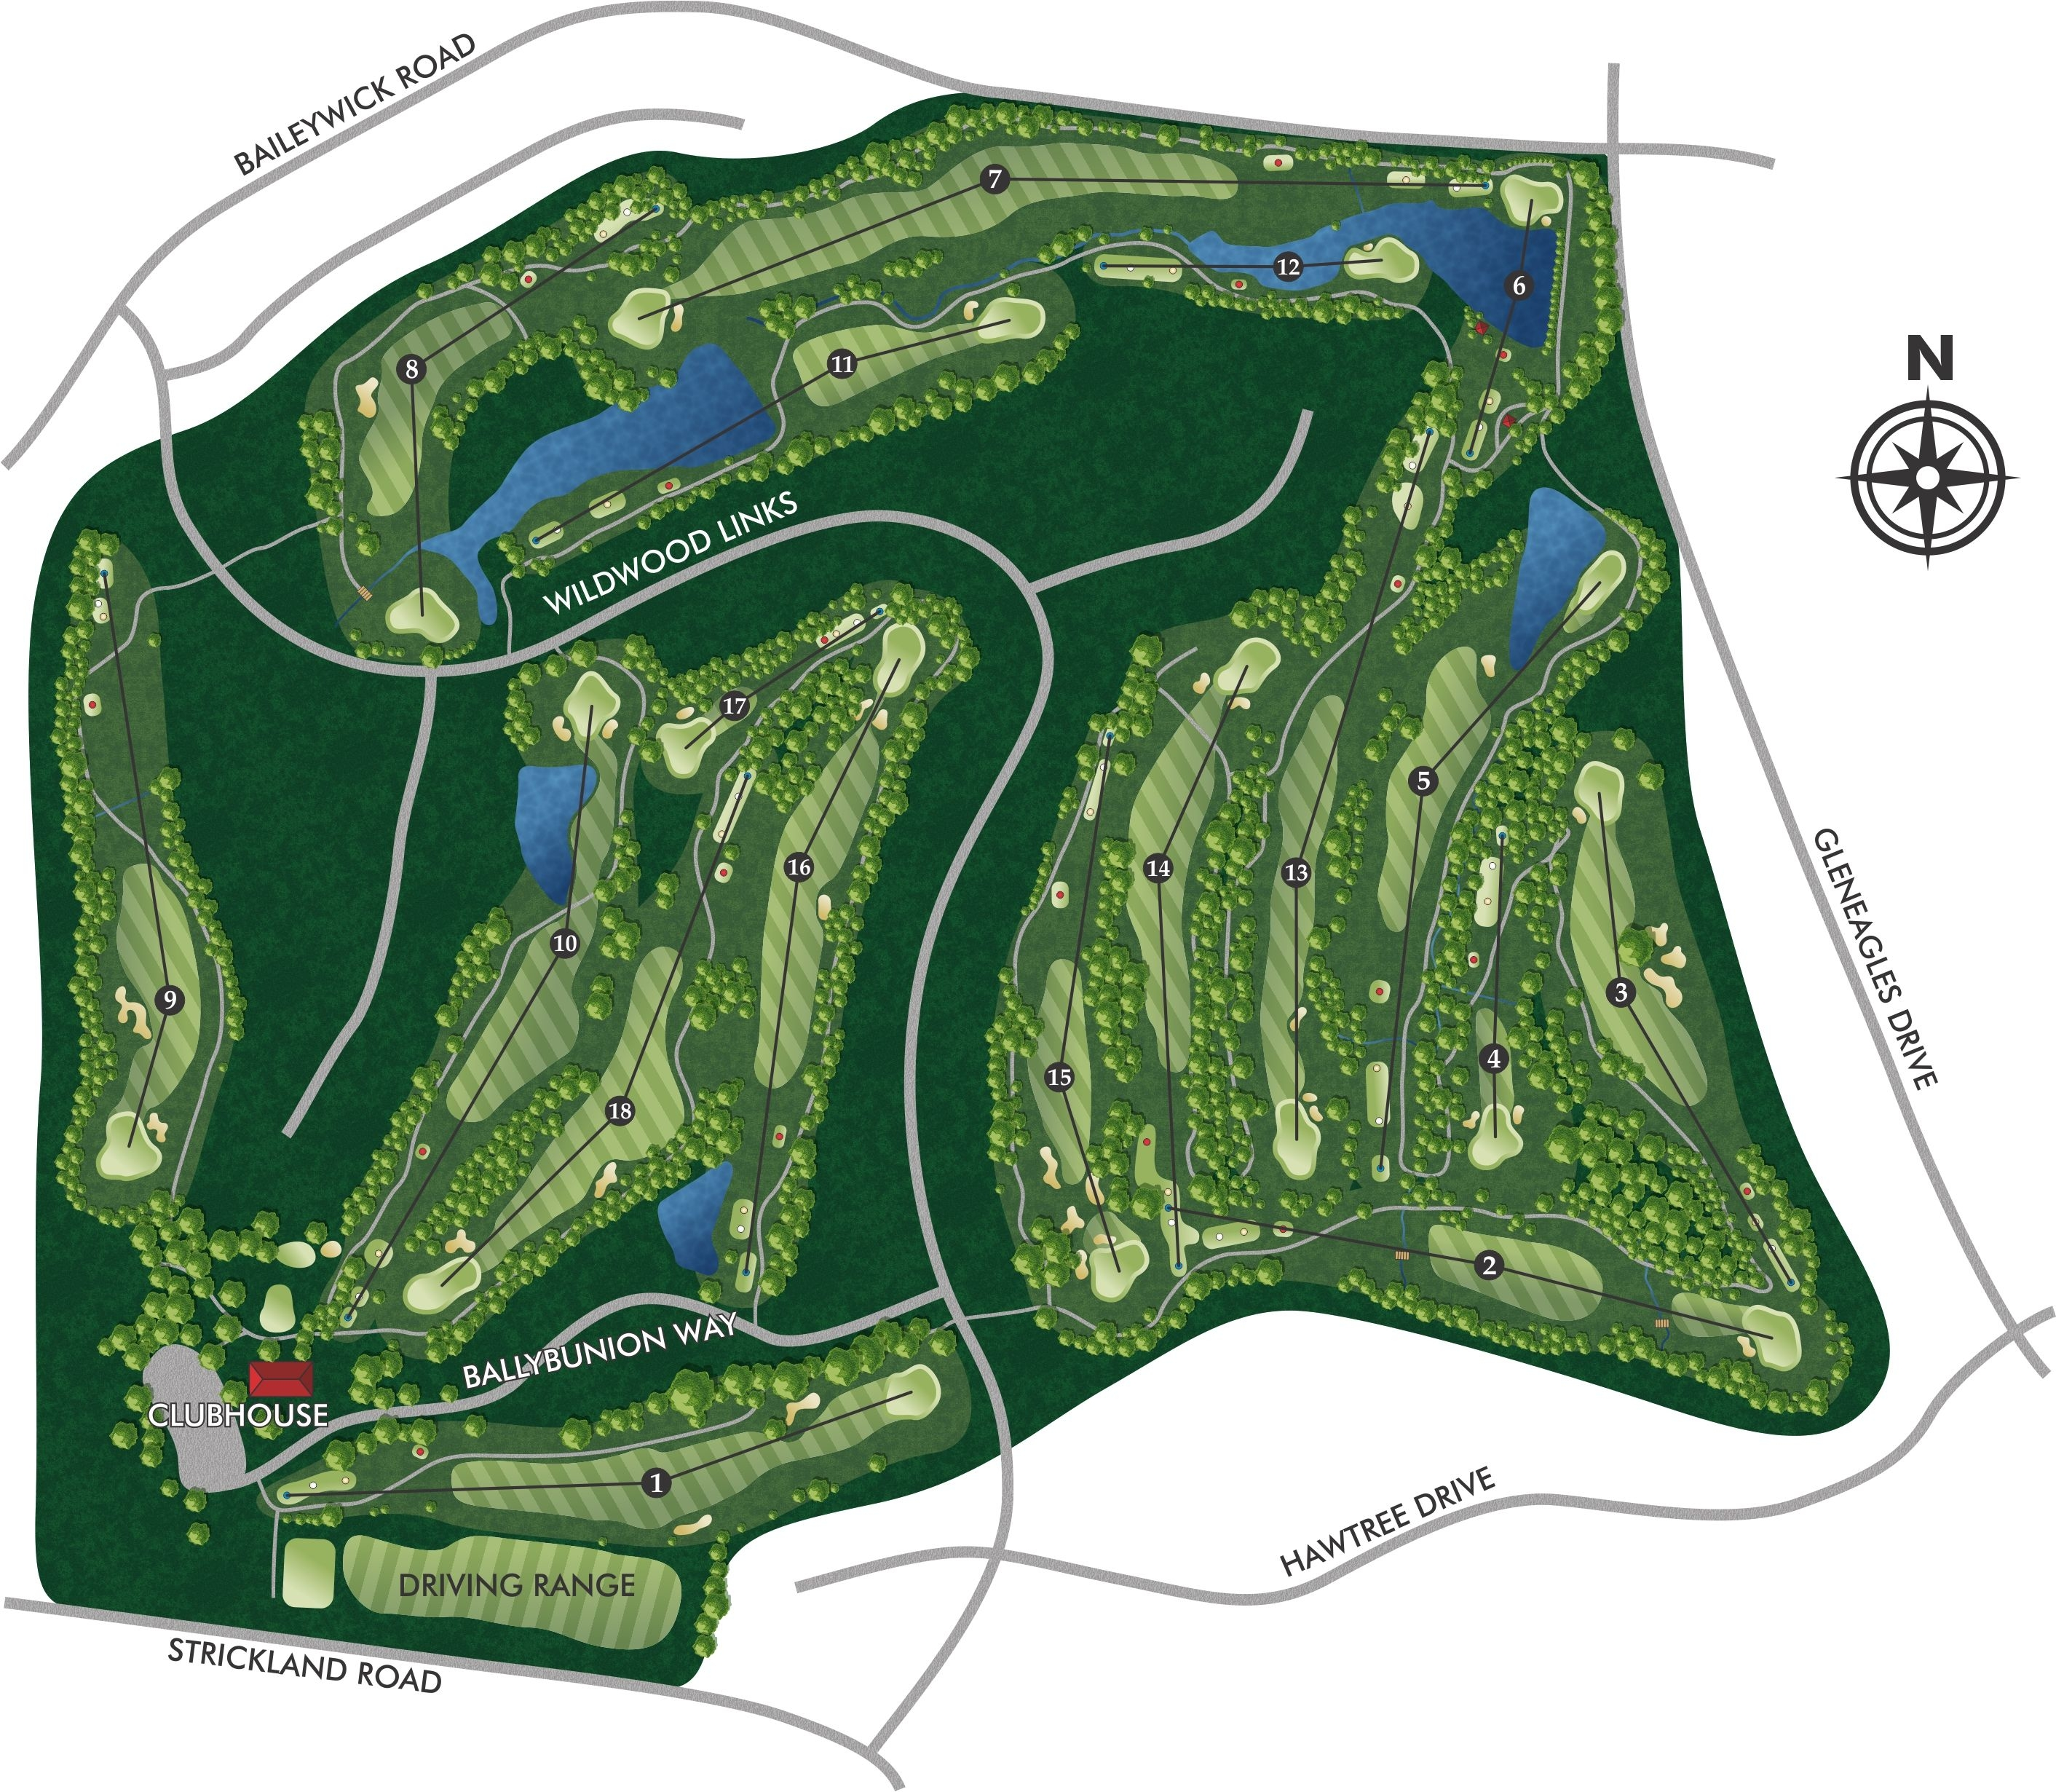 Course Layout Wildwood Green Golf Club Where Champions Play